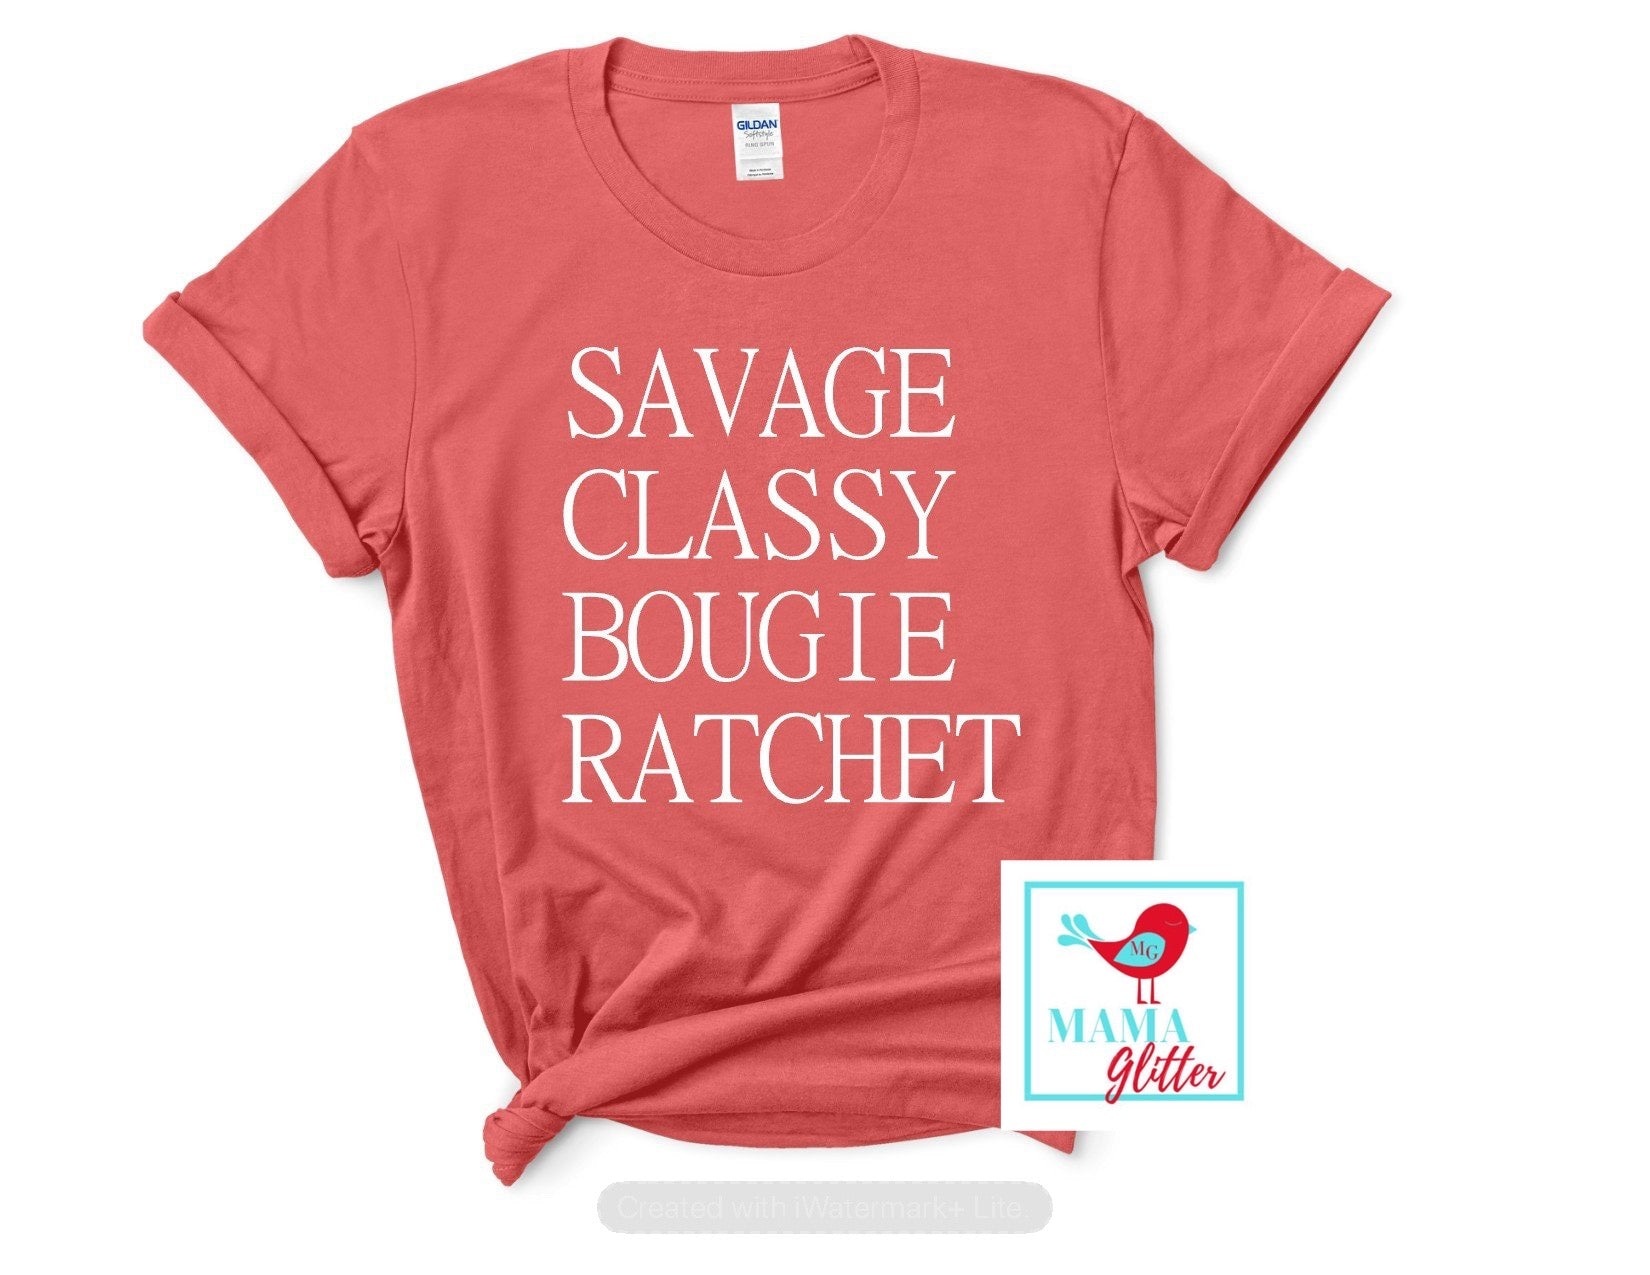 Savage, Classy, Bougie, Ratchet- white